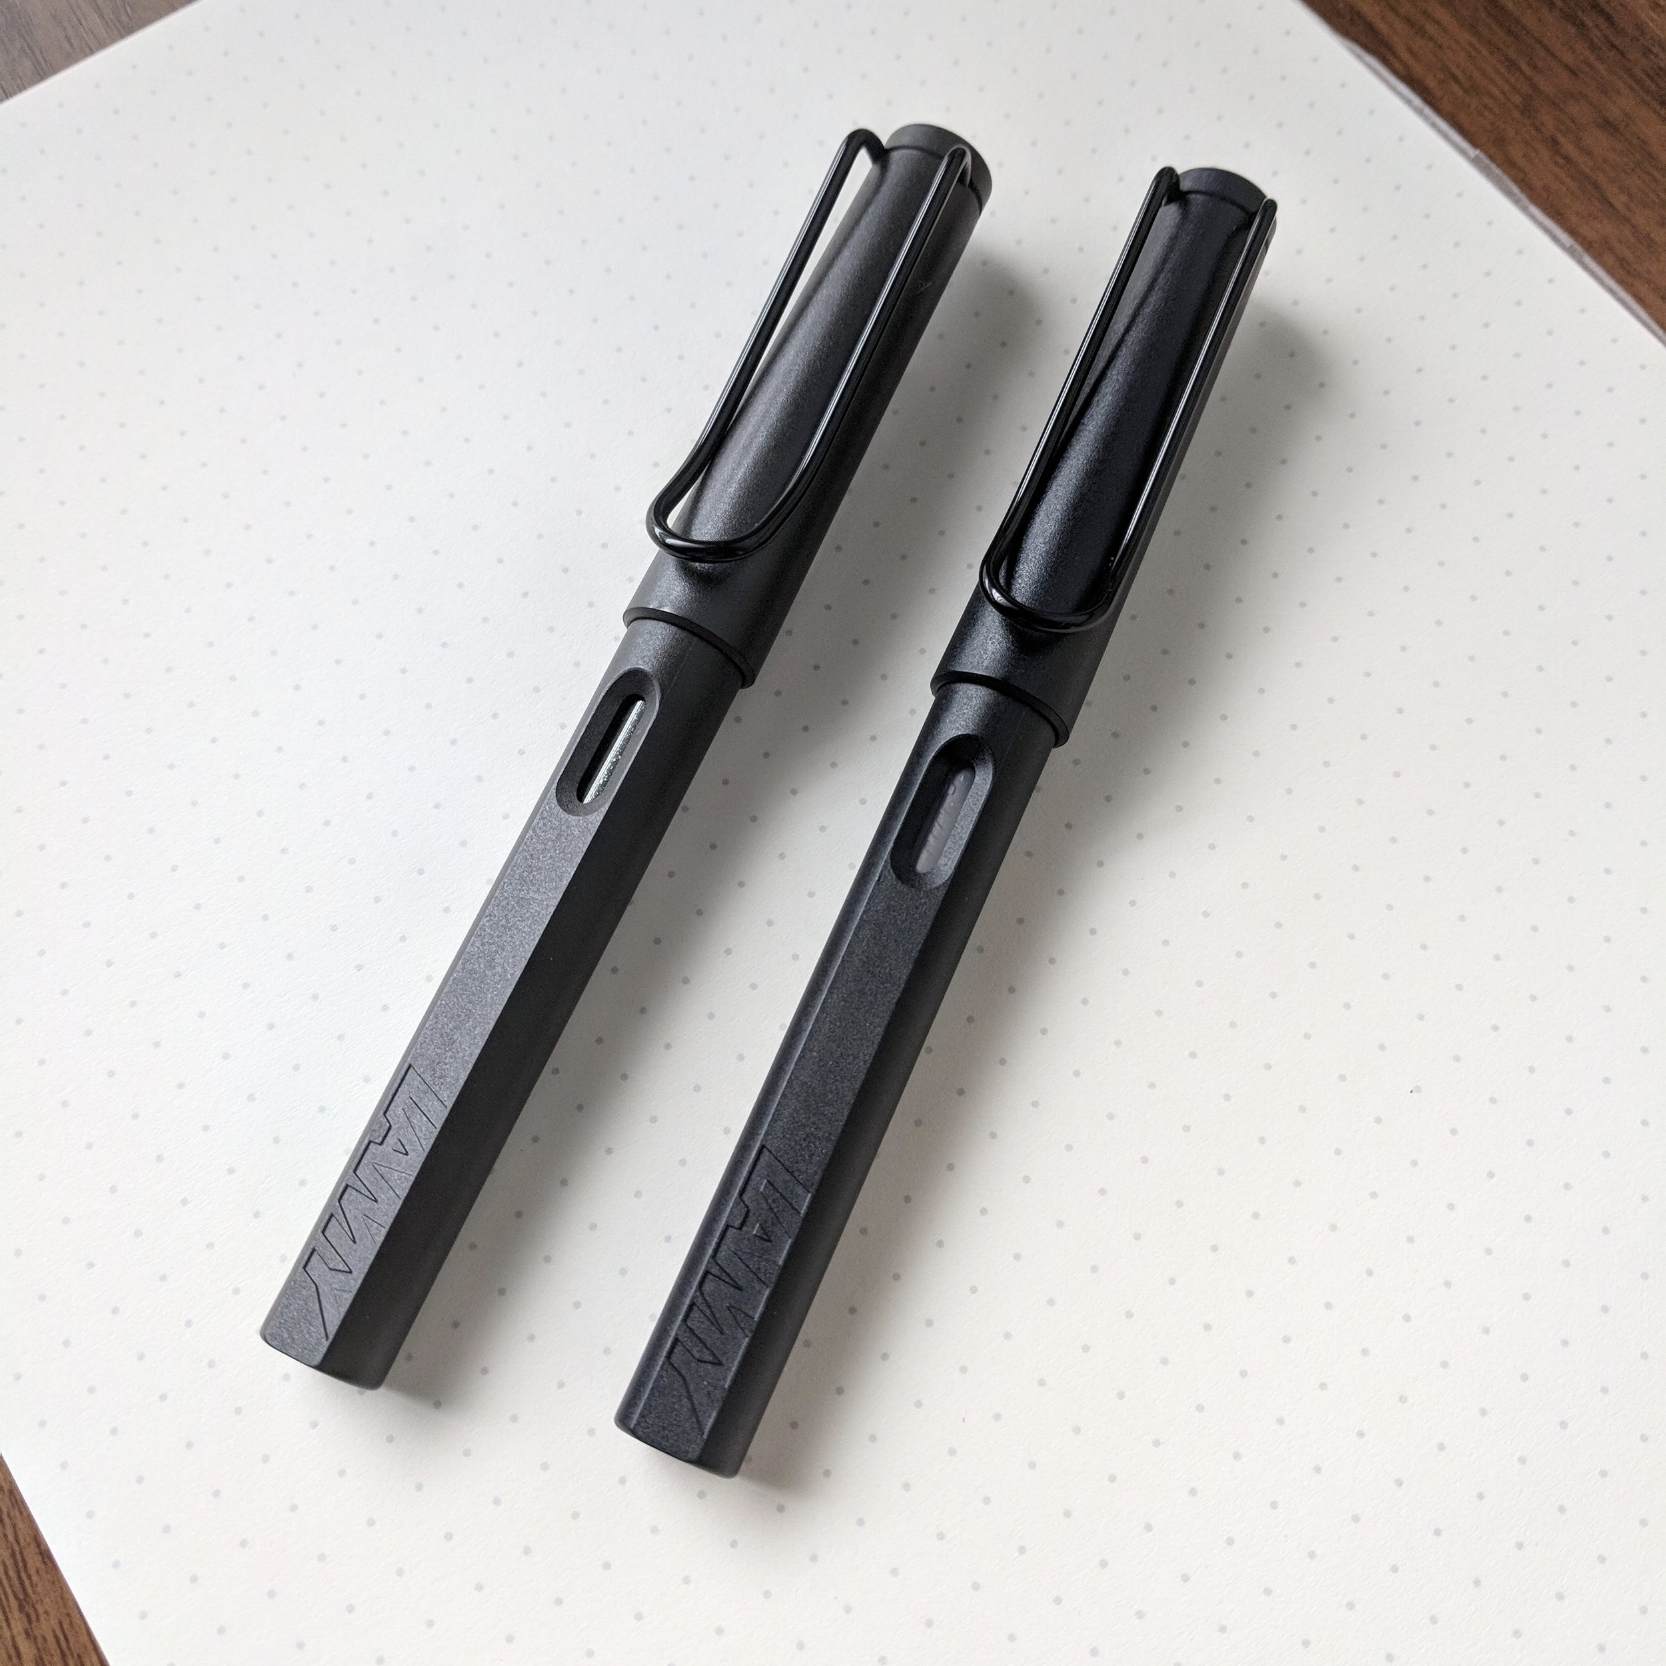 The Lamy Safari Umber (from the standard lineup) is on the left, and the Lamy Safari All-Black, this year's special edition, is on the right.